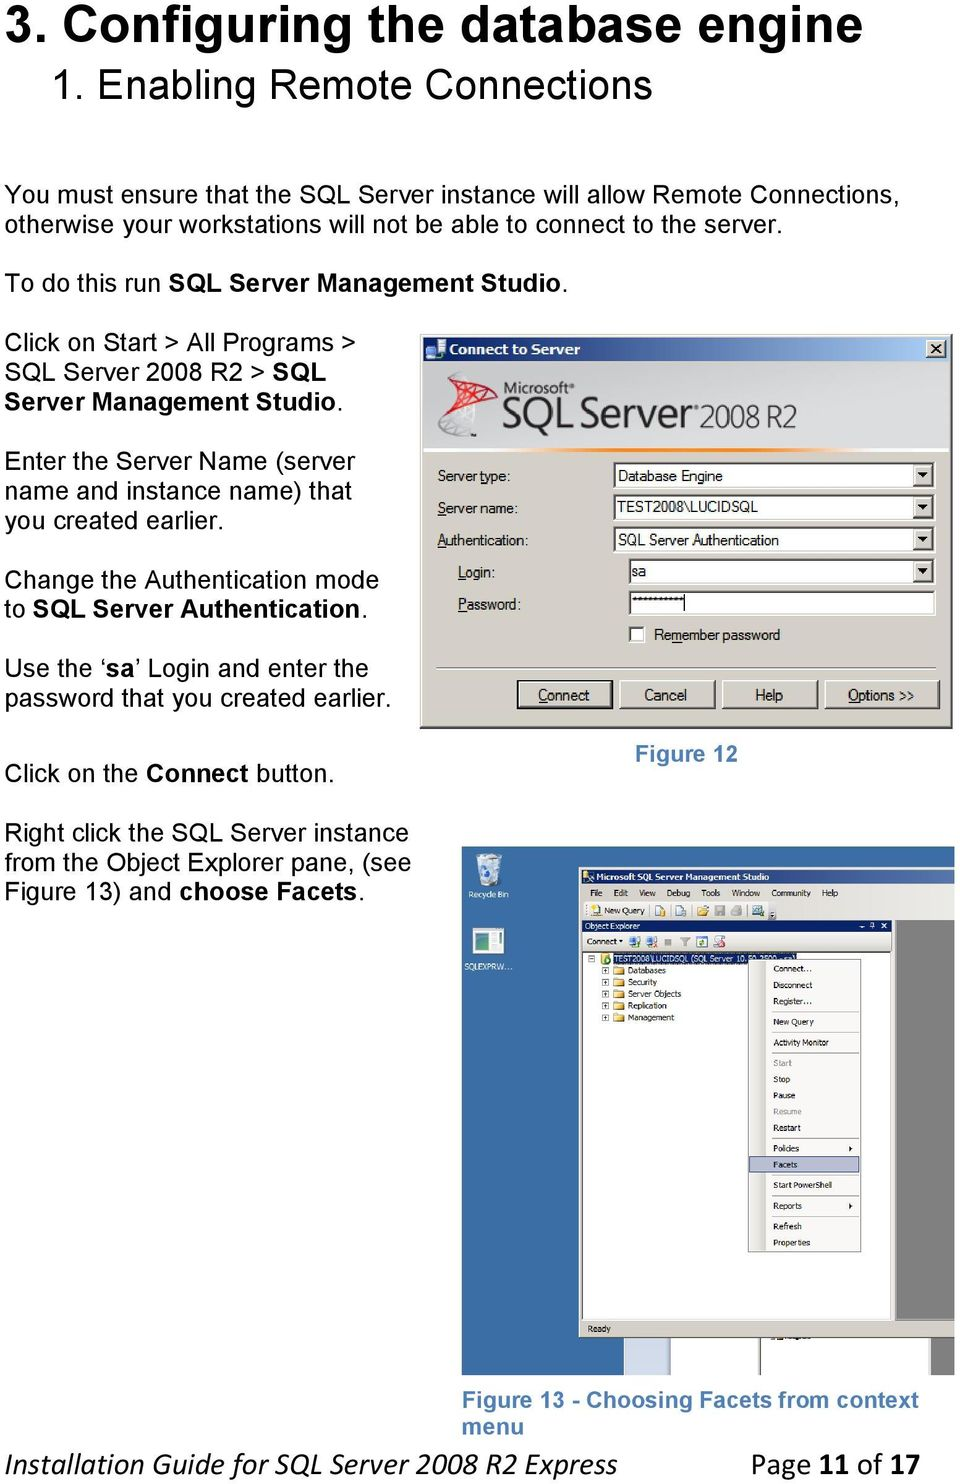 To do this run SQL Server Management Studio. Click on Start > All Programs > SQL Server 2008 R2 > SQL Server Management Studio.